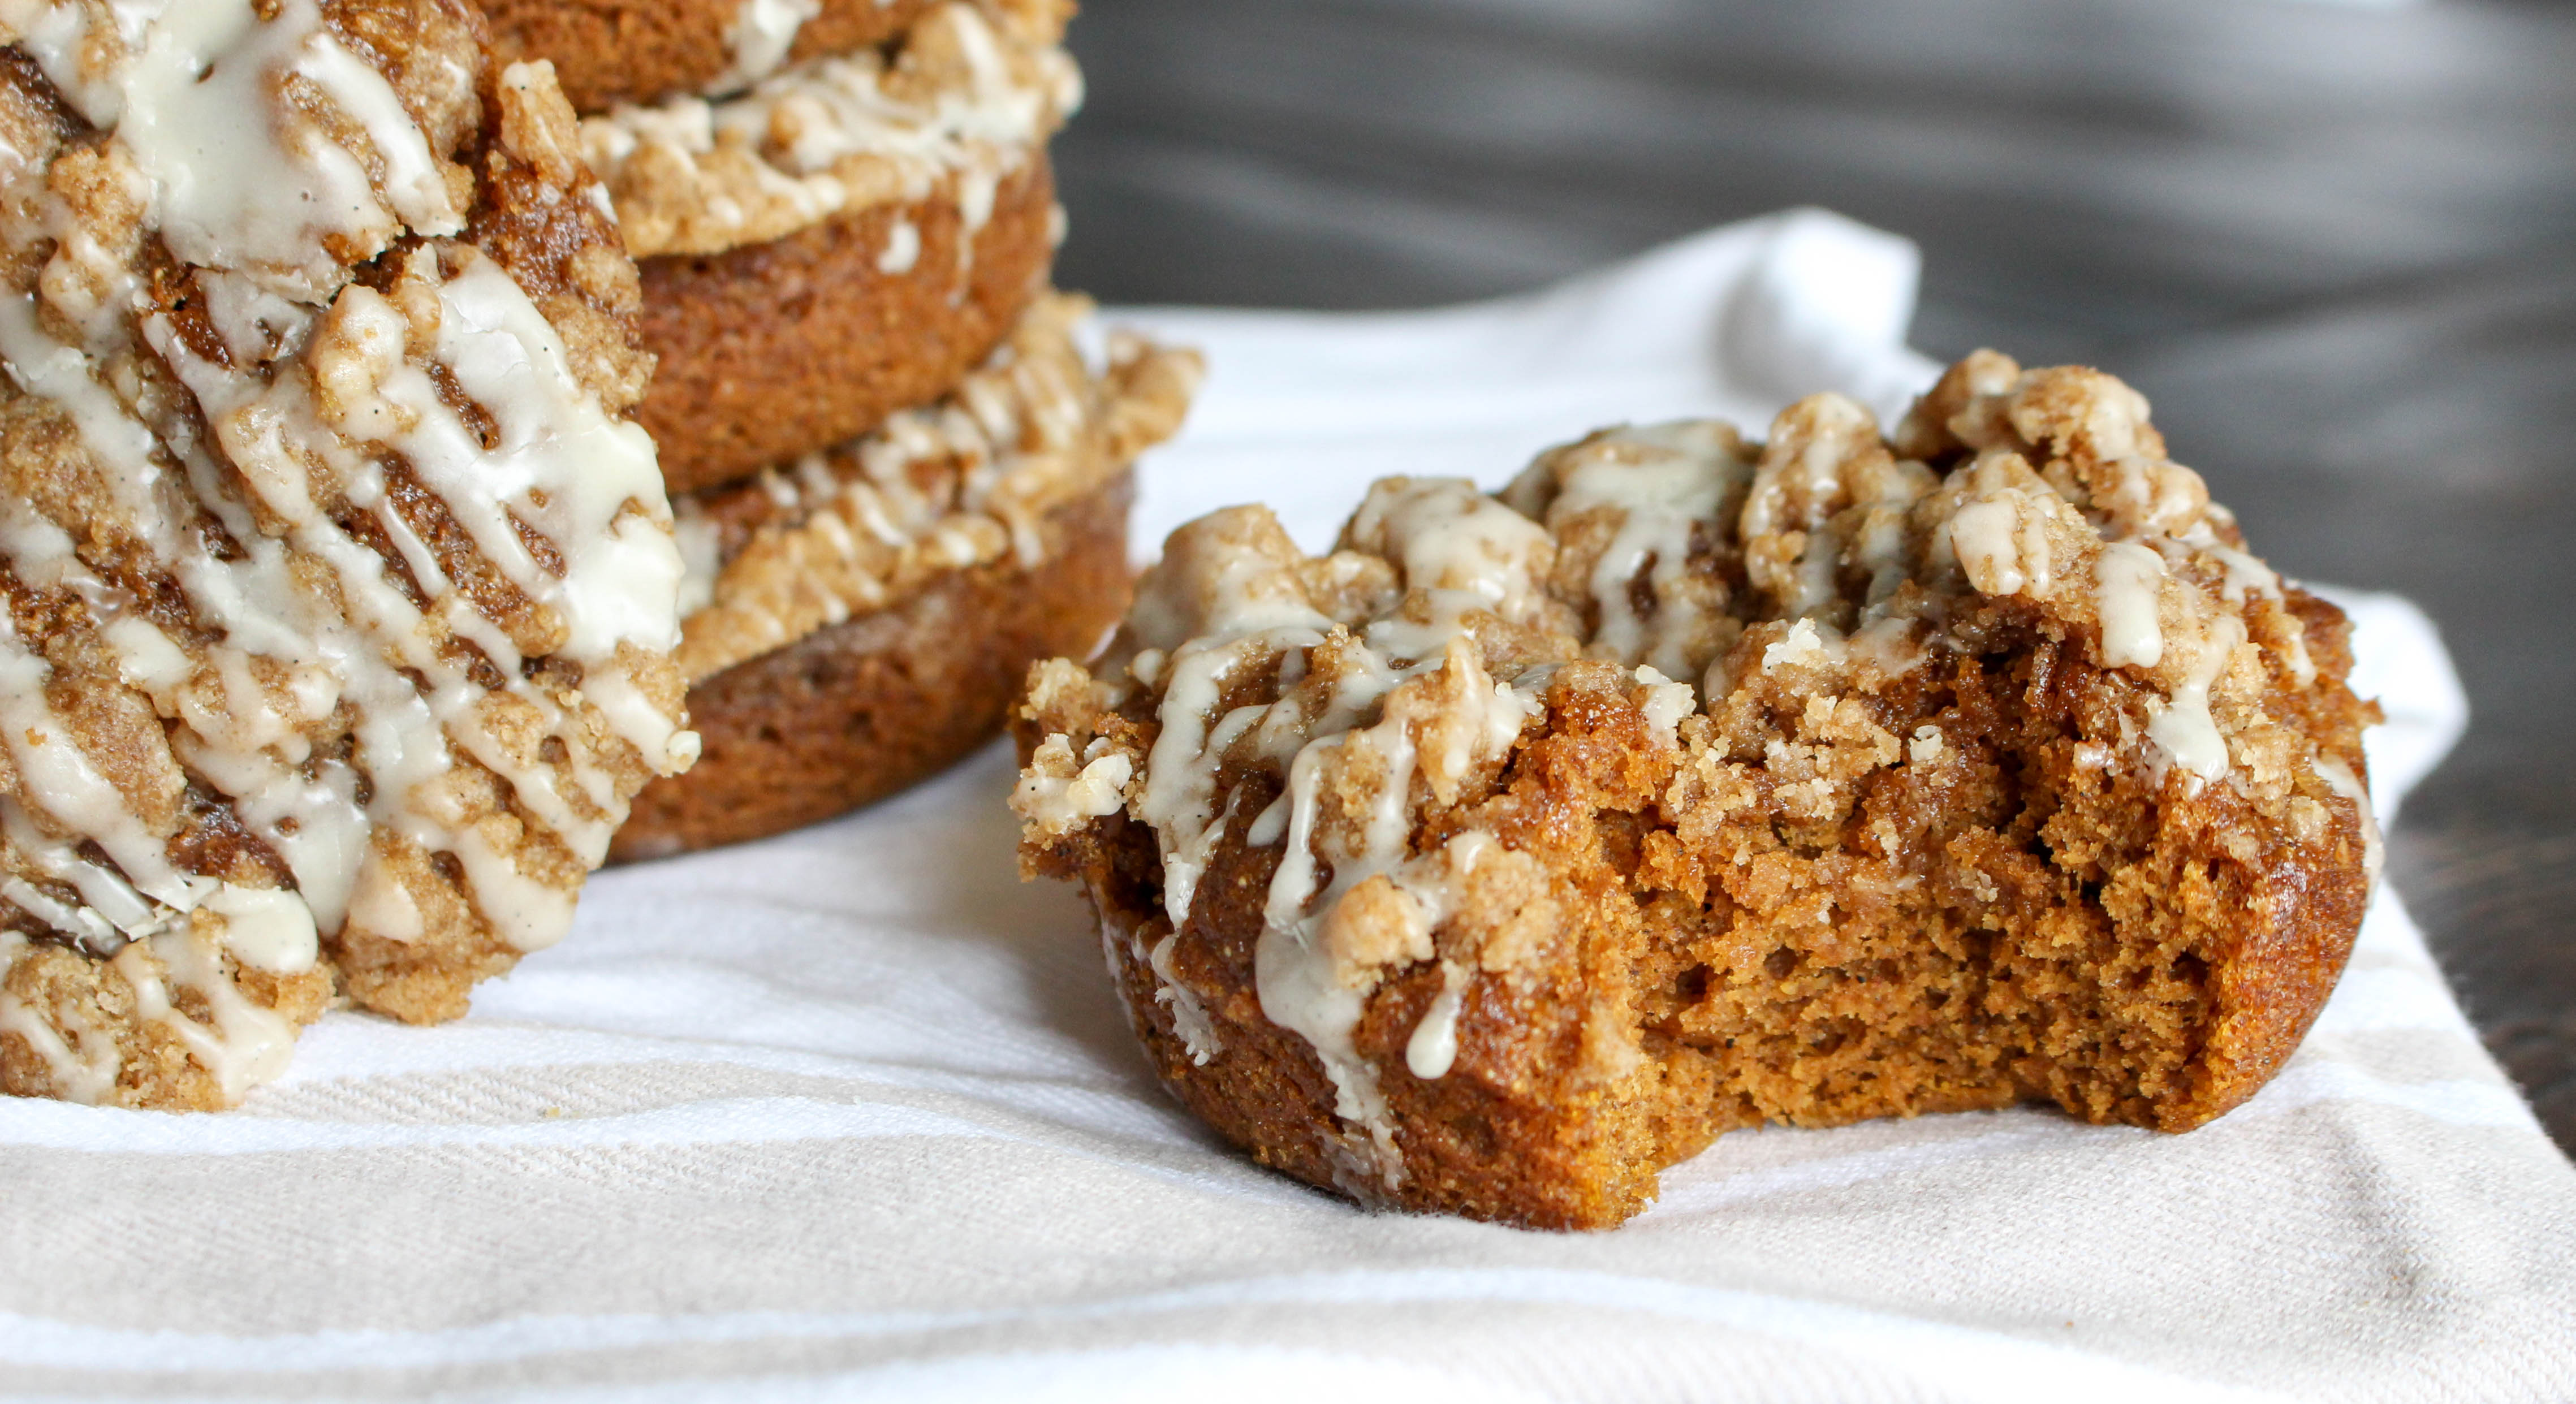 Baked Pumpkin Donuts With Coffee Cake Streusel Maple Glaze